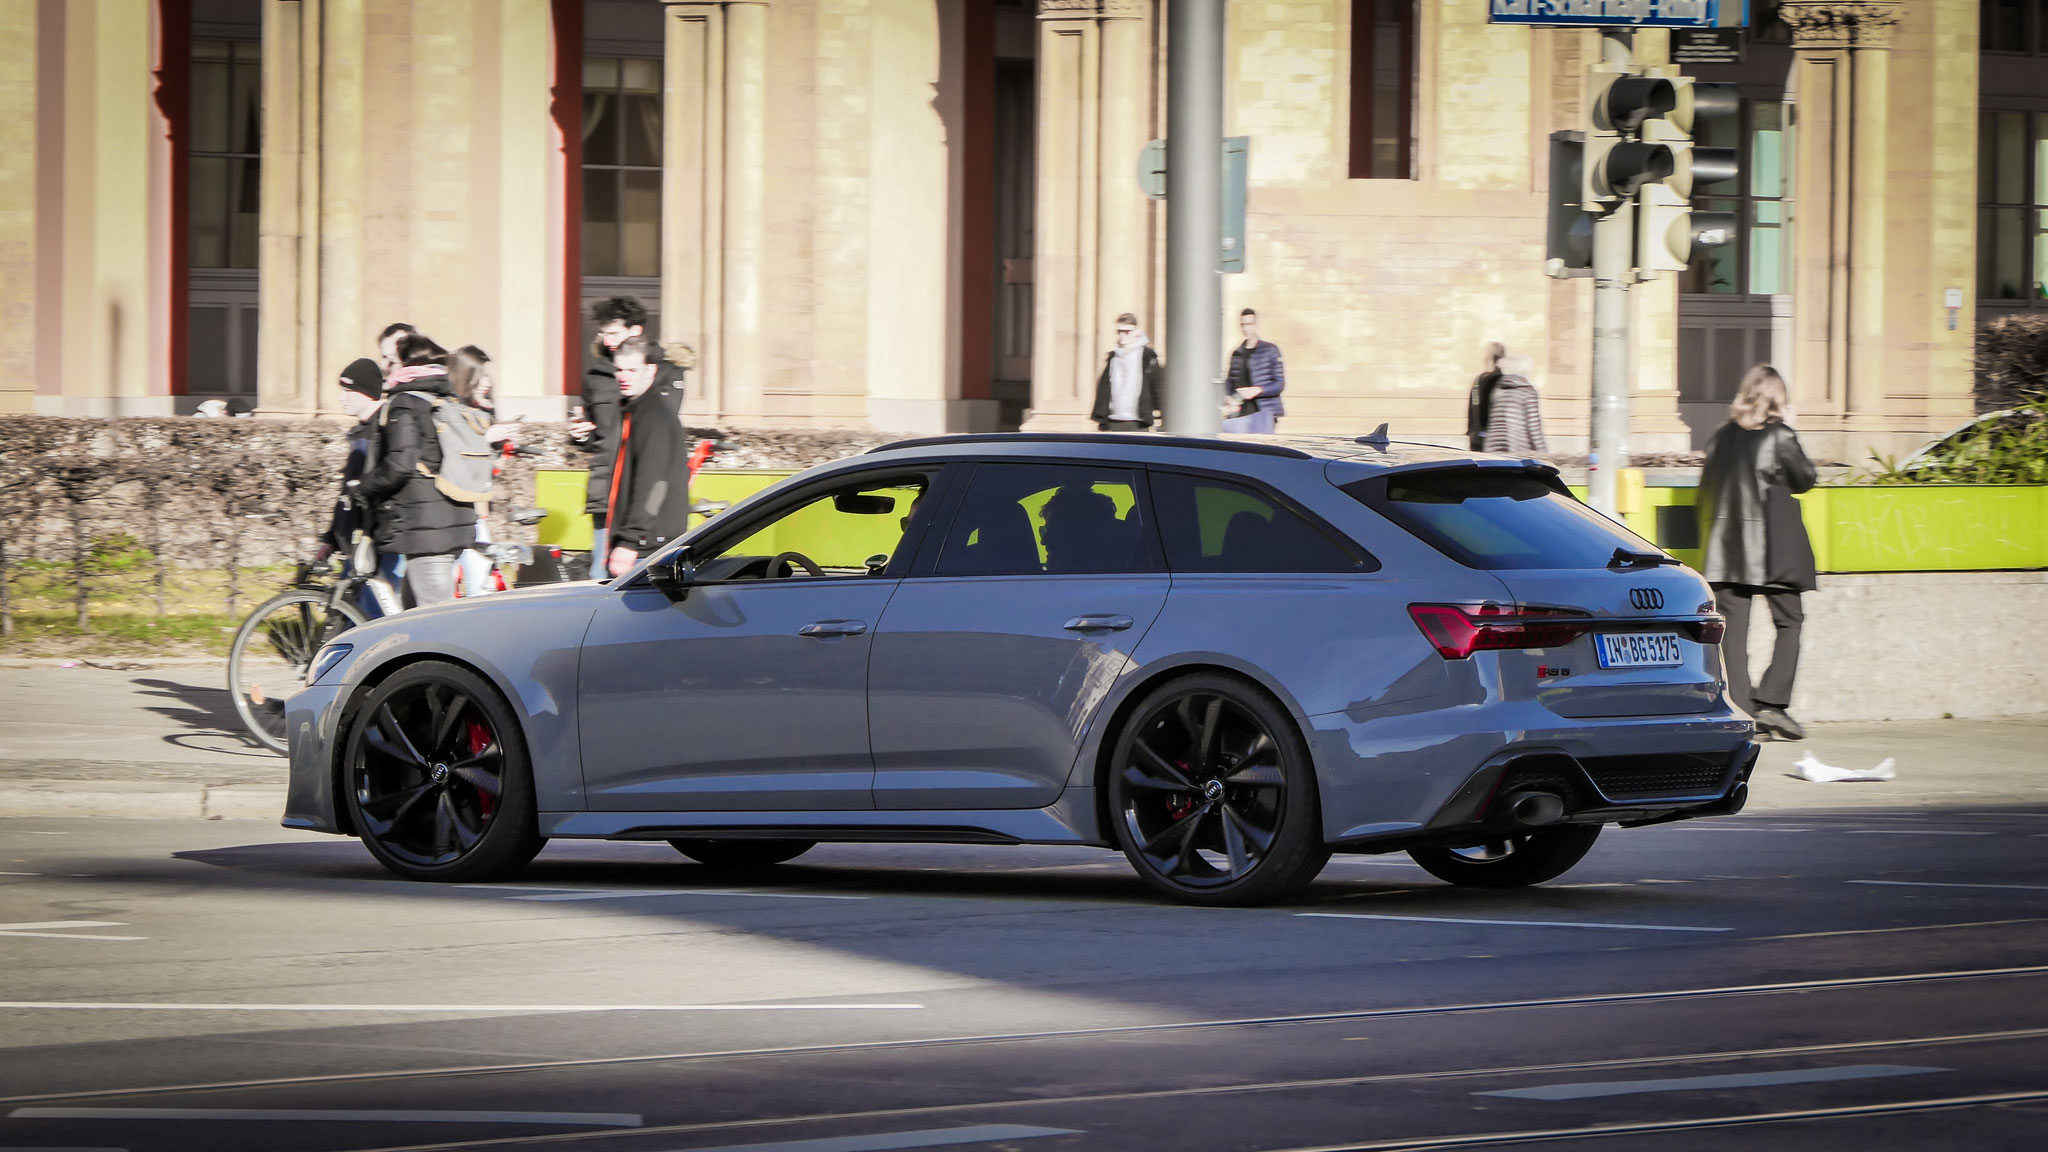 Audi RS6 - IN-BG-5175